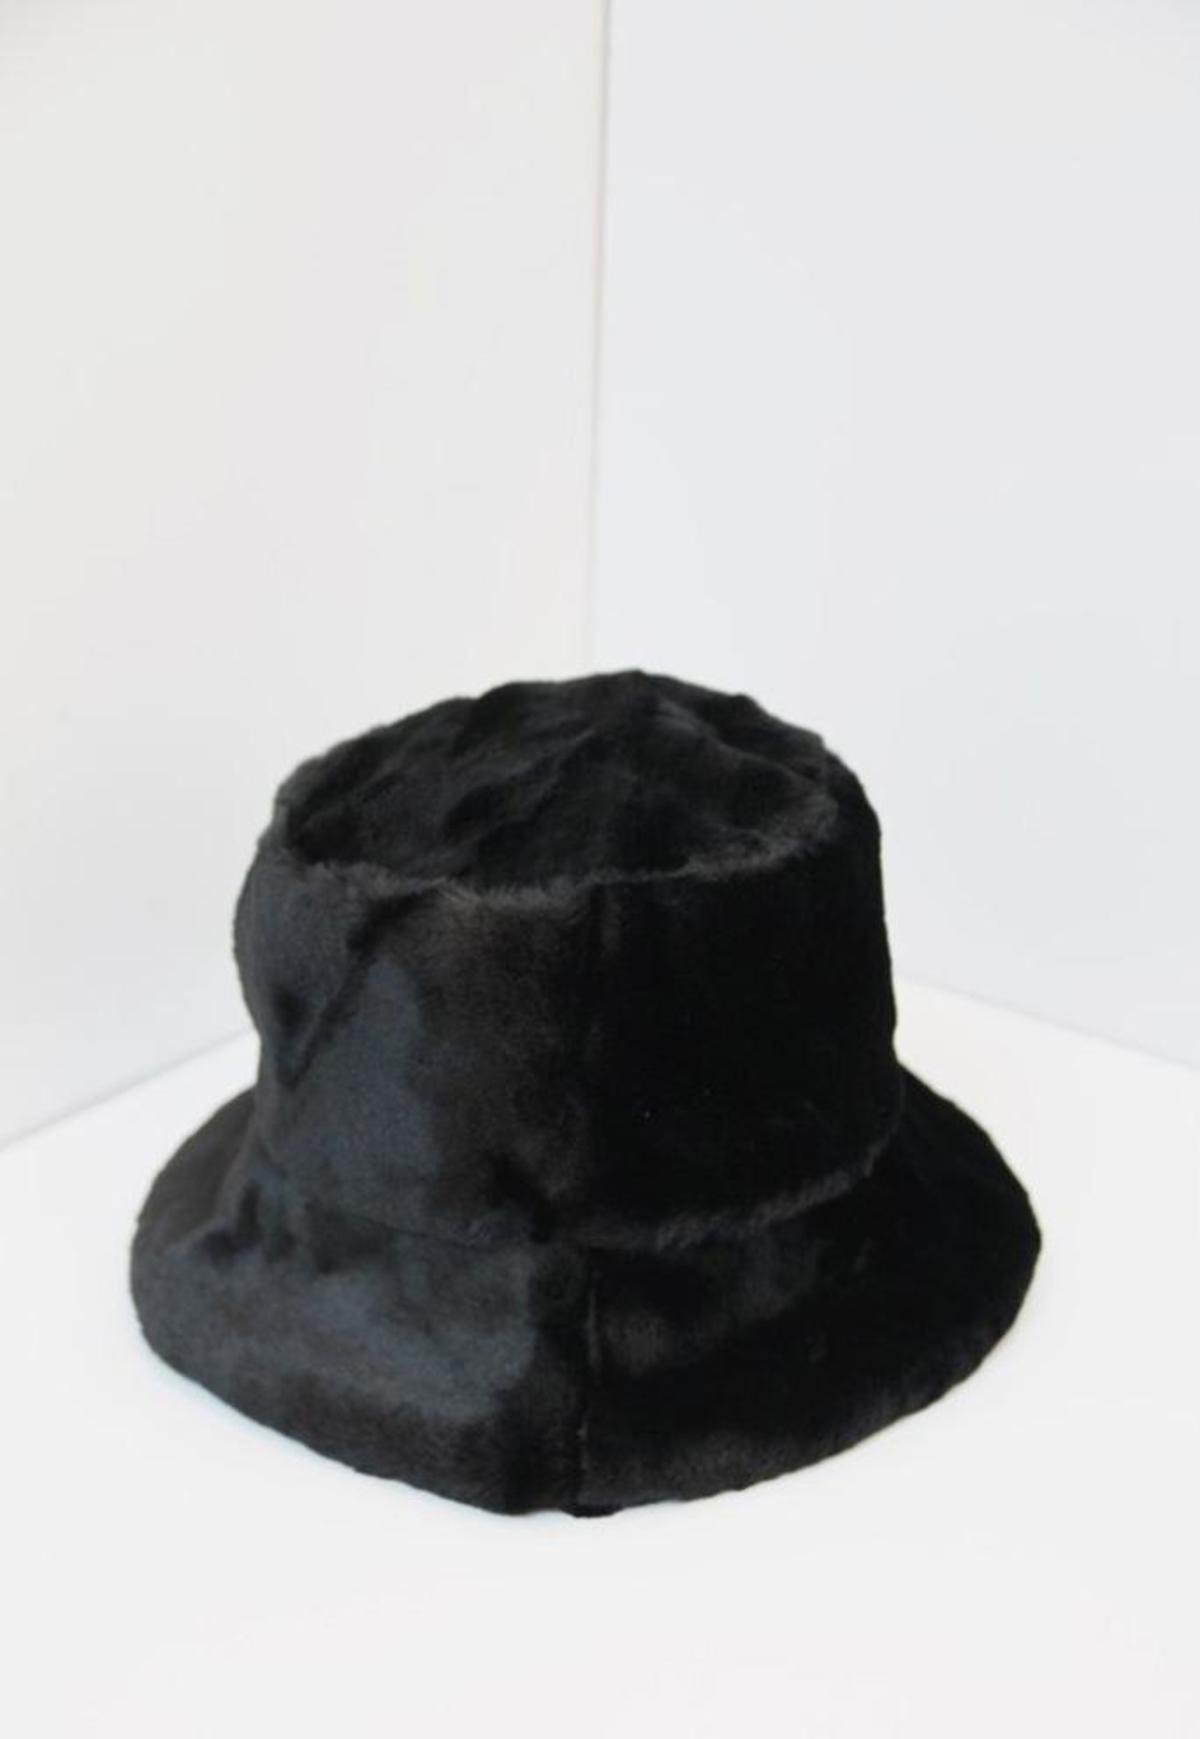 Faux Fur Hat Black Cheaper Than Retail Price Buy Clothing Accessories And Lifestyle Products For Women Men